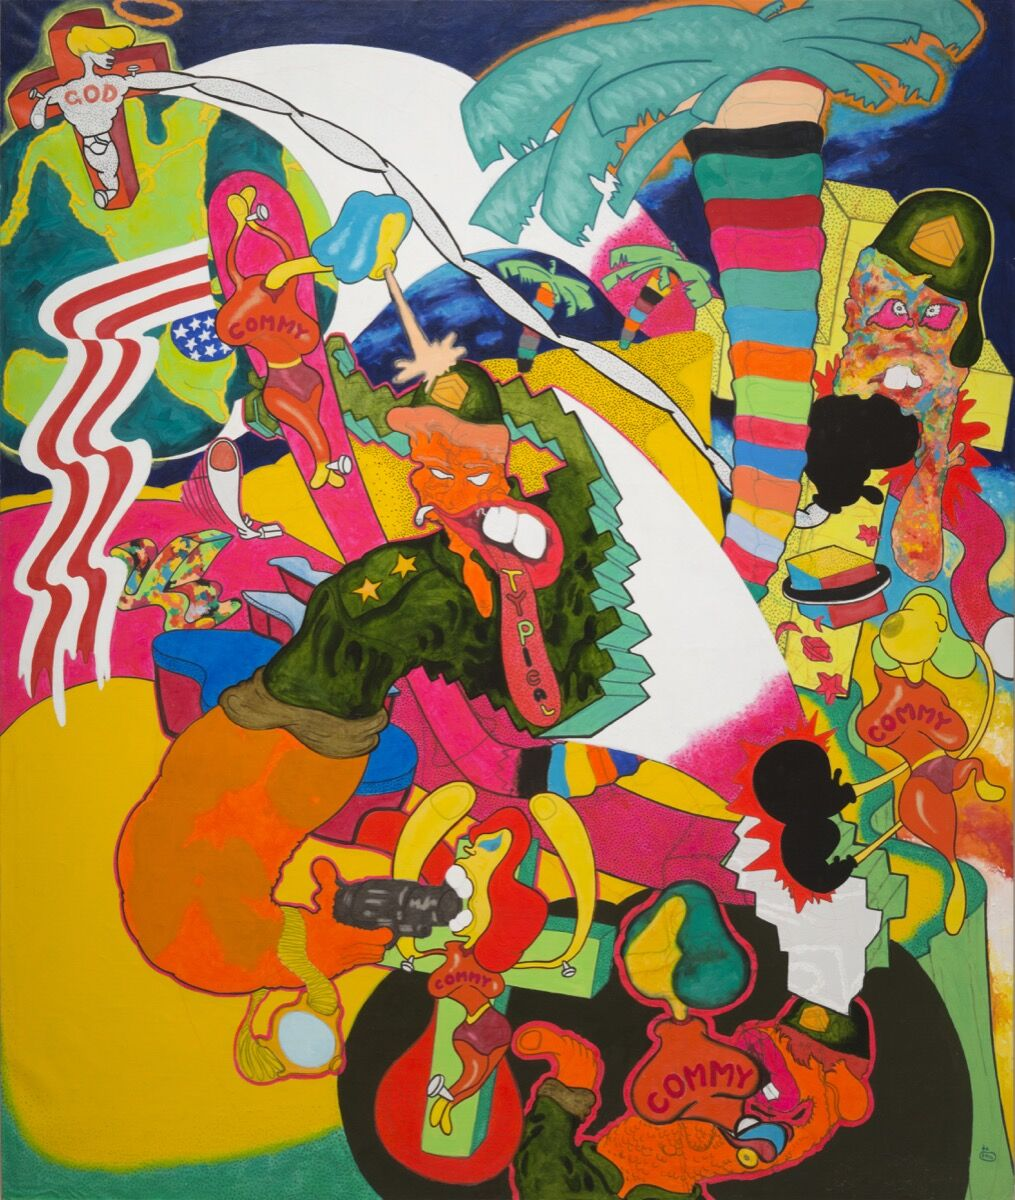 """Peter Saul, """"Vietnam,"""" 1966. © Peter Saul. Courtesy of Mary Boone Gallery, New York."""